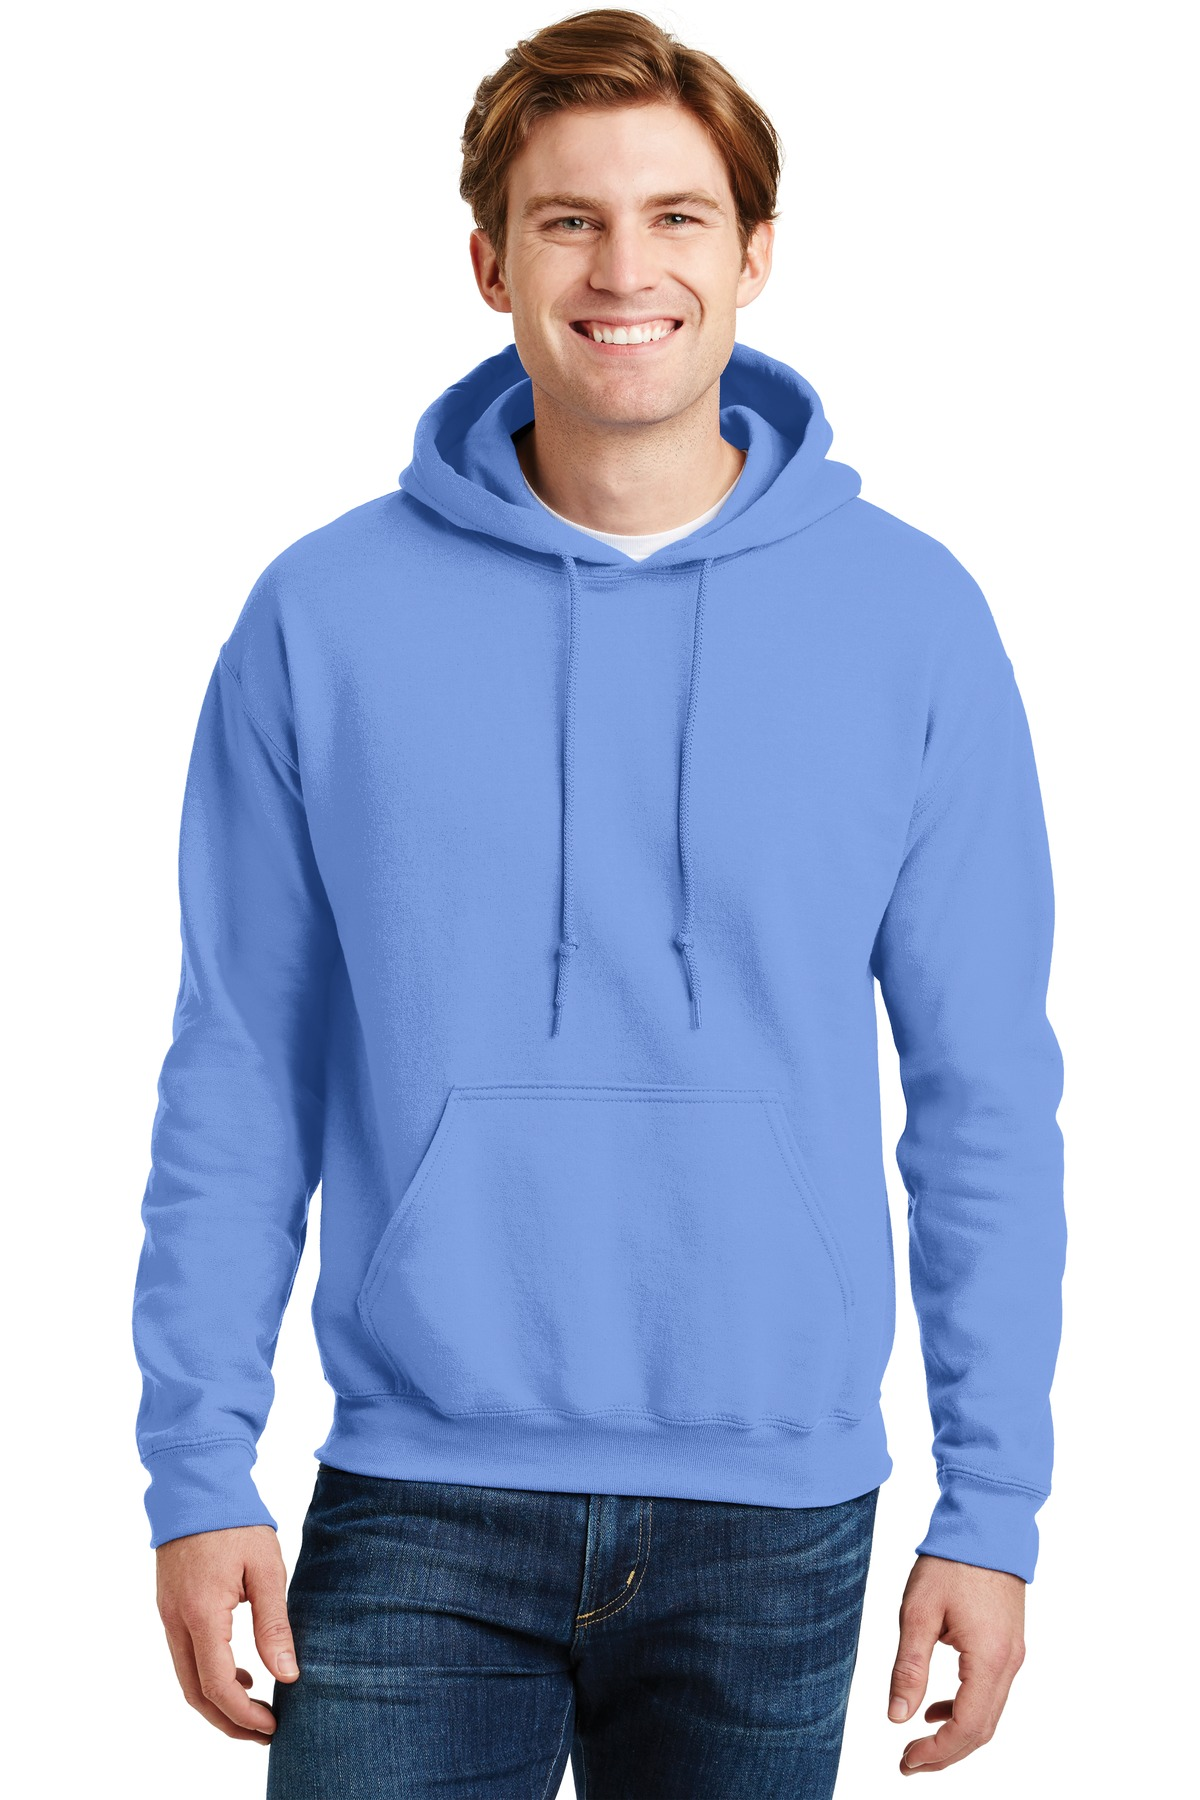 Gildan ®  - DryBlend ®  Pullover Hooded Sweatshirt.  12500 - Carolina Blue